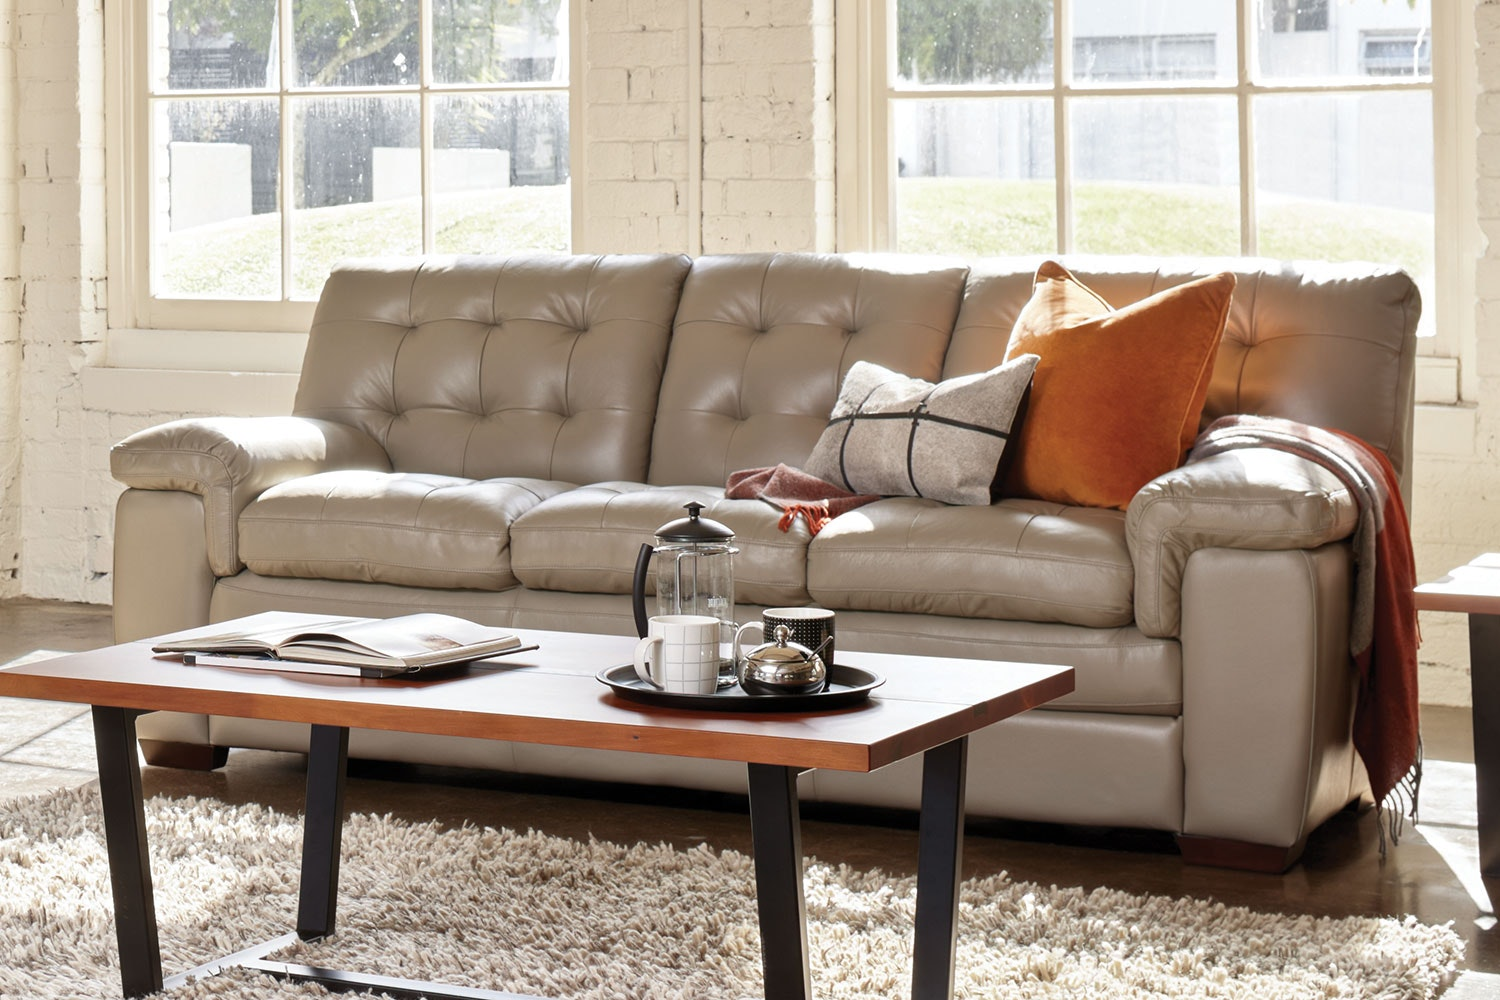 Cullen 3 Seater Leather Sofa by La-Z-Boy